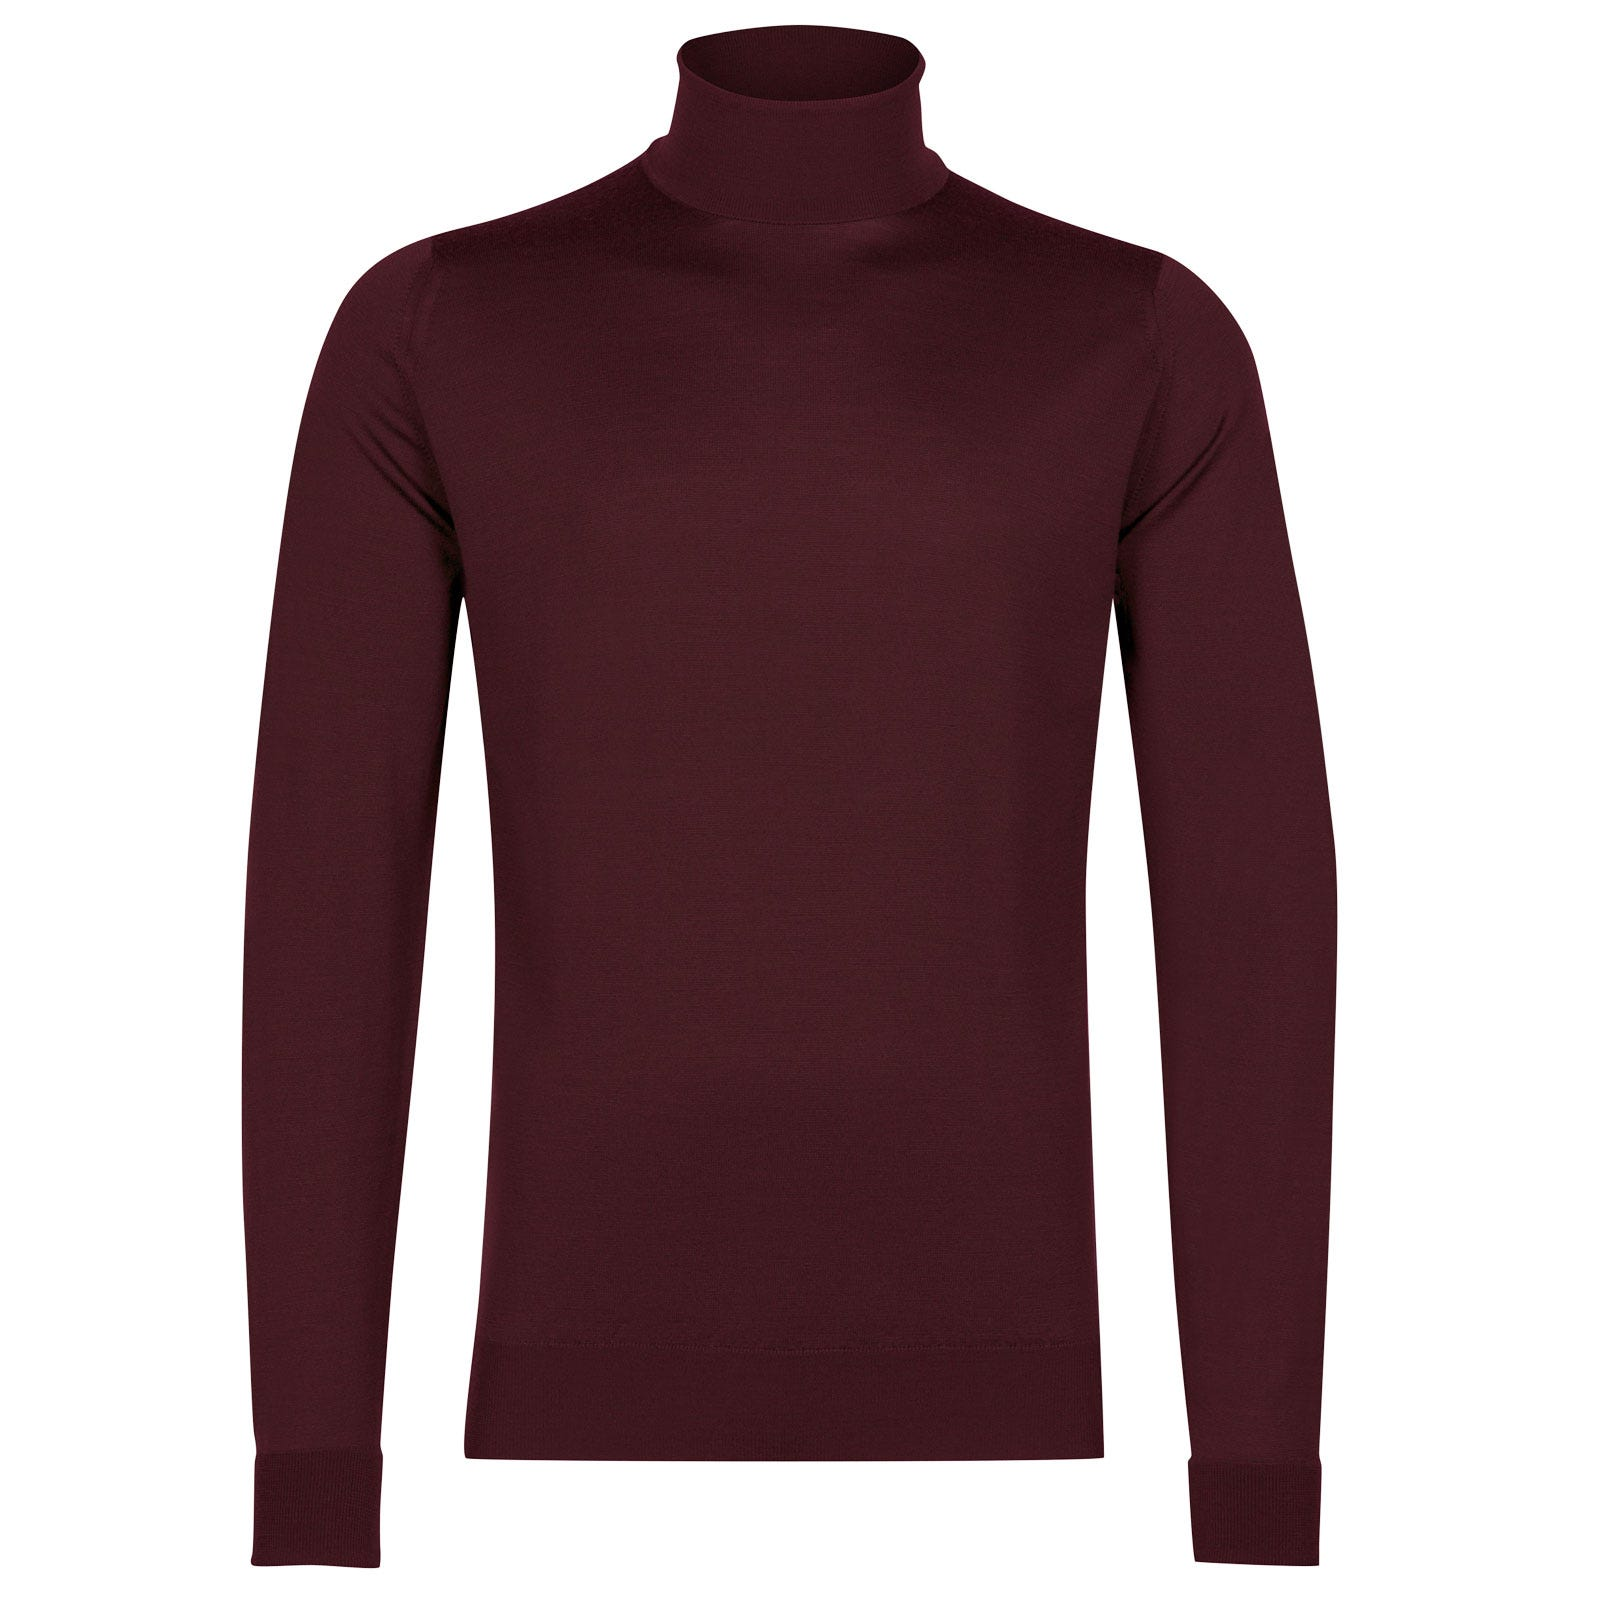 John Smedley richards Merino Wool Pullover in Maroon Blaze-S